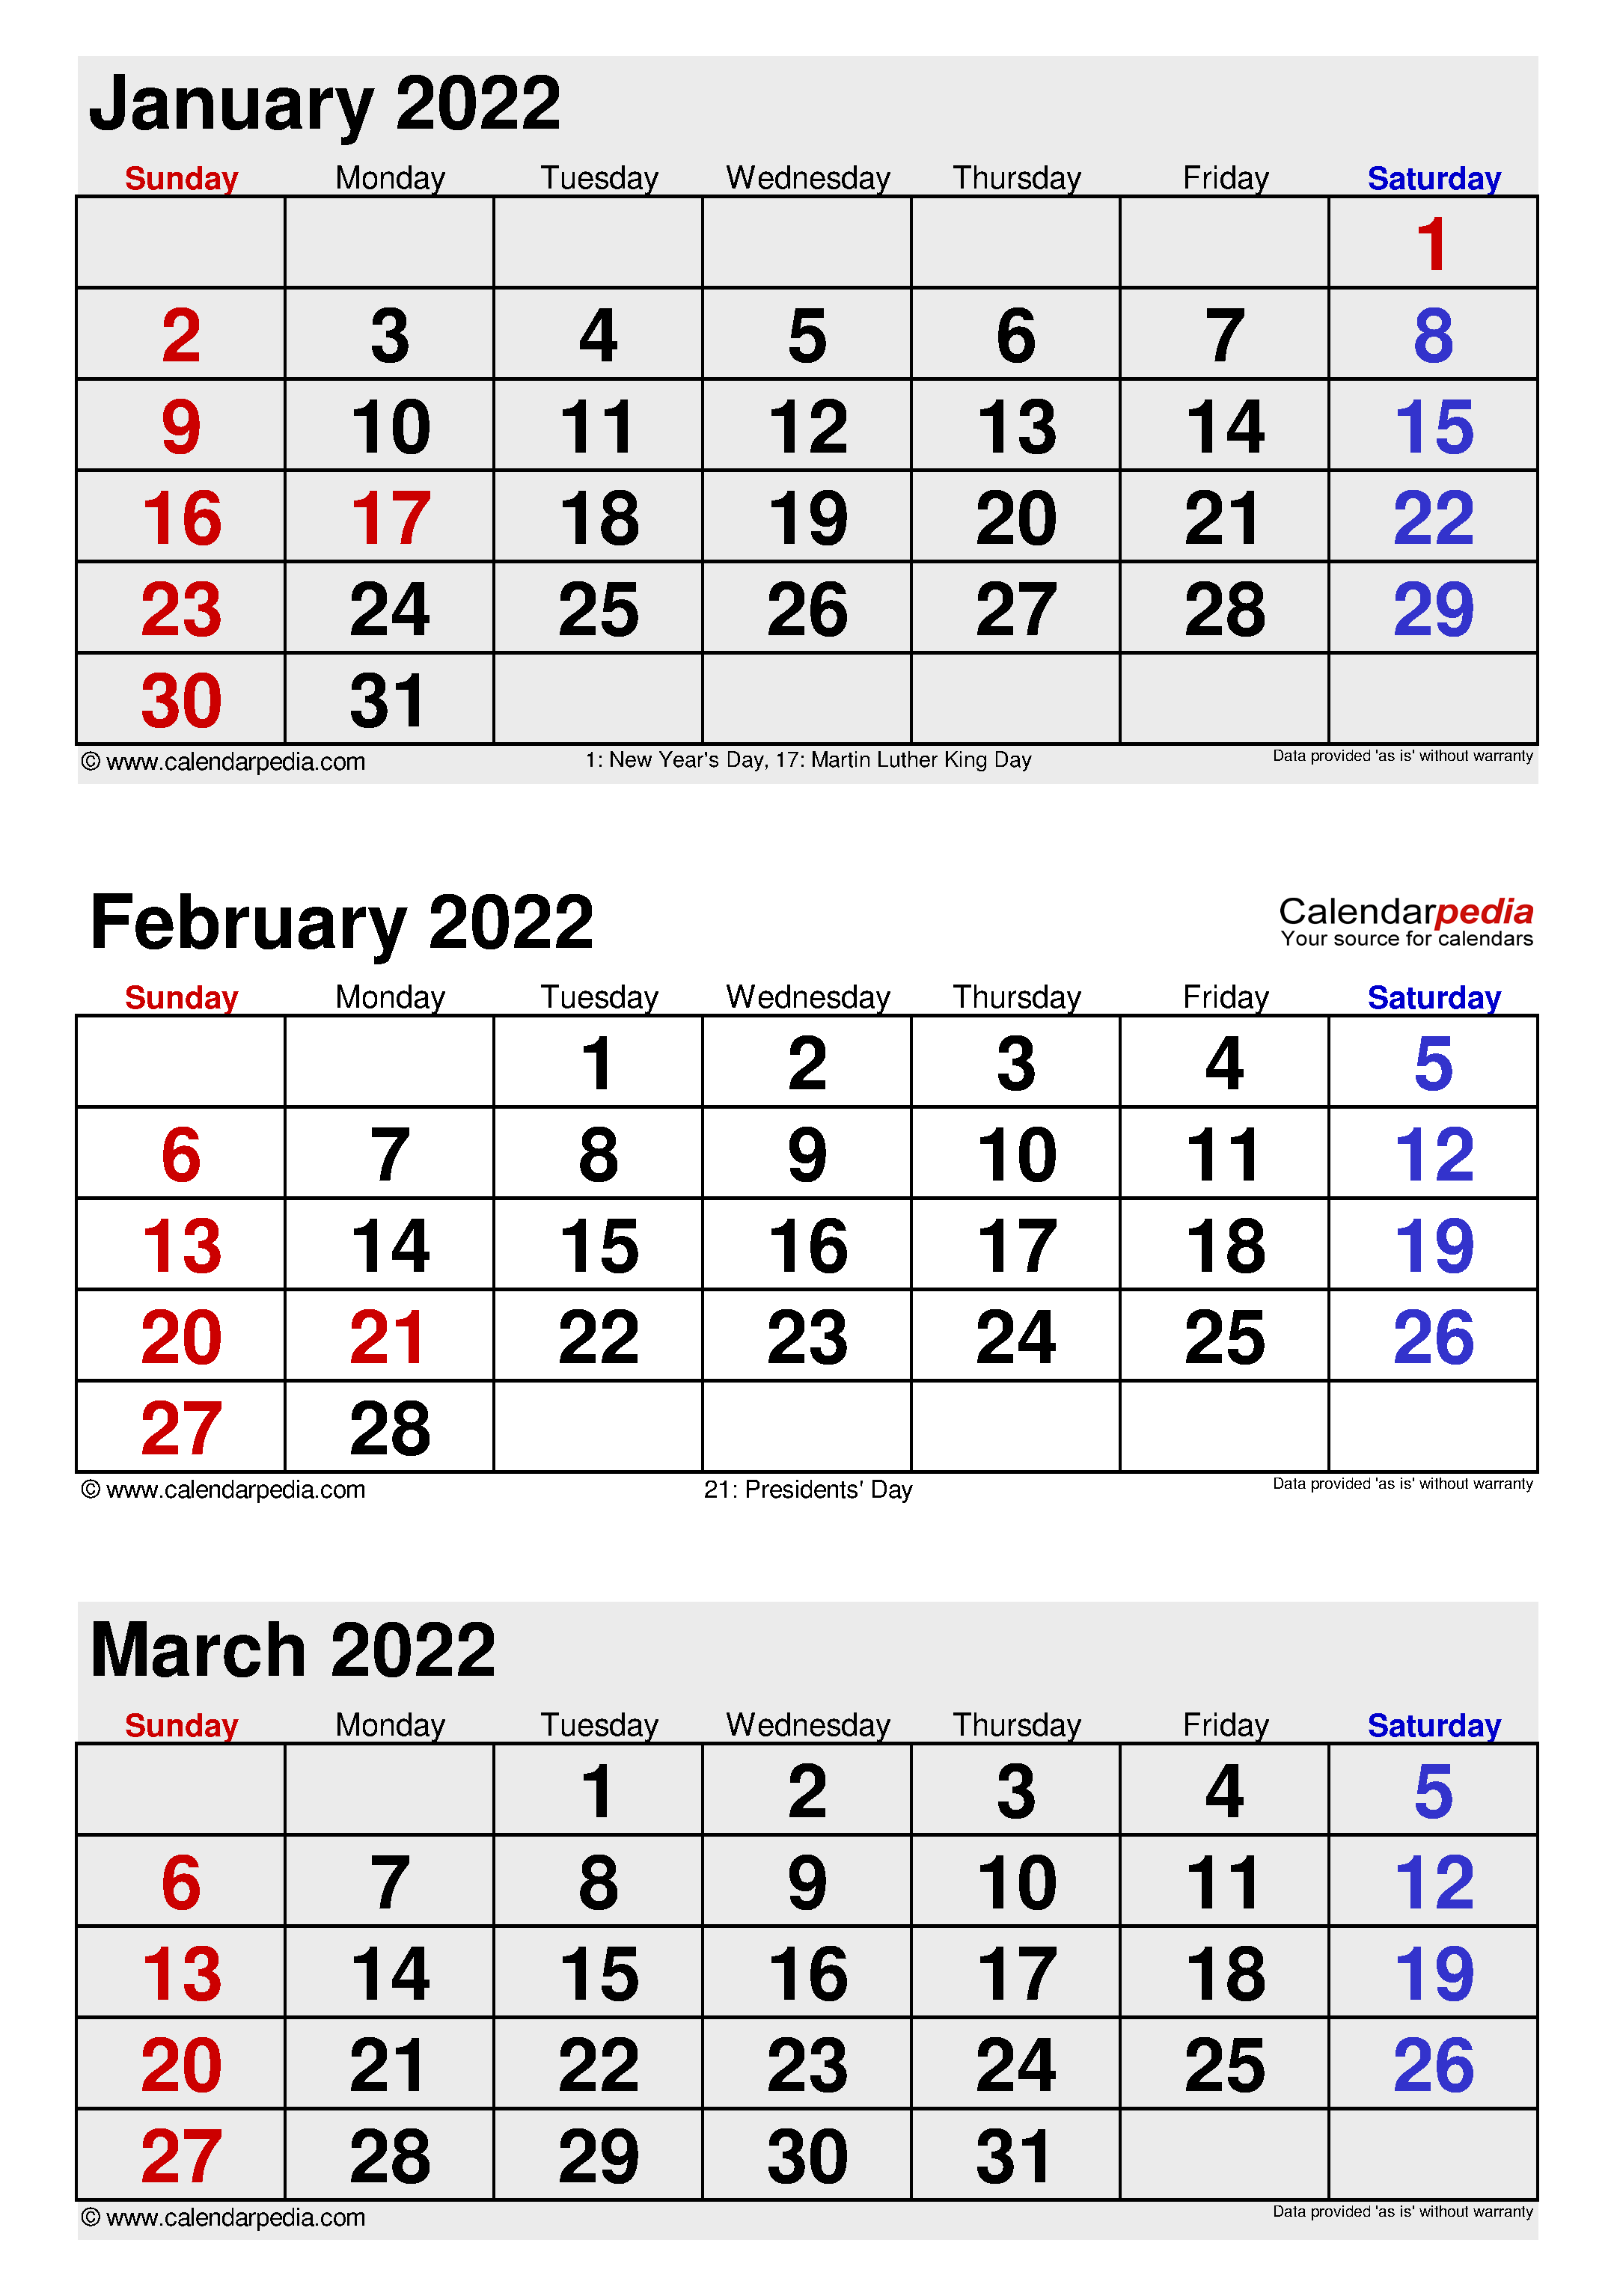 February 2022 Calendar | Templates for Word, Excel and PDF